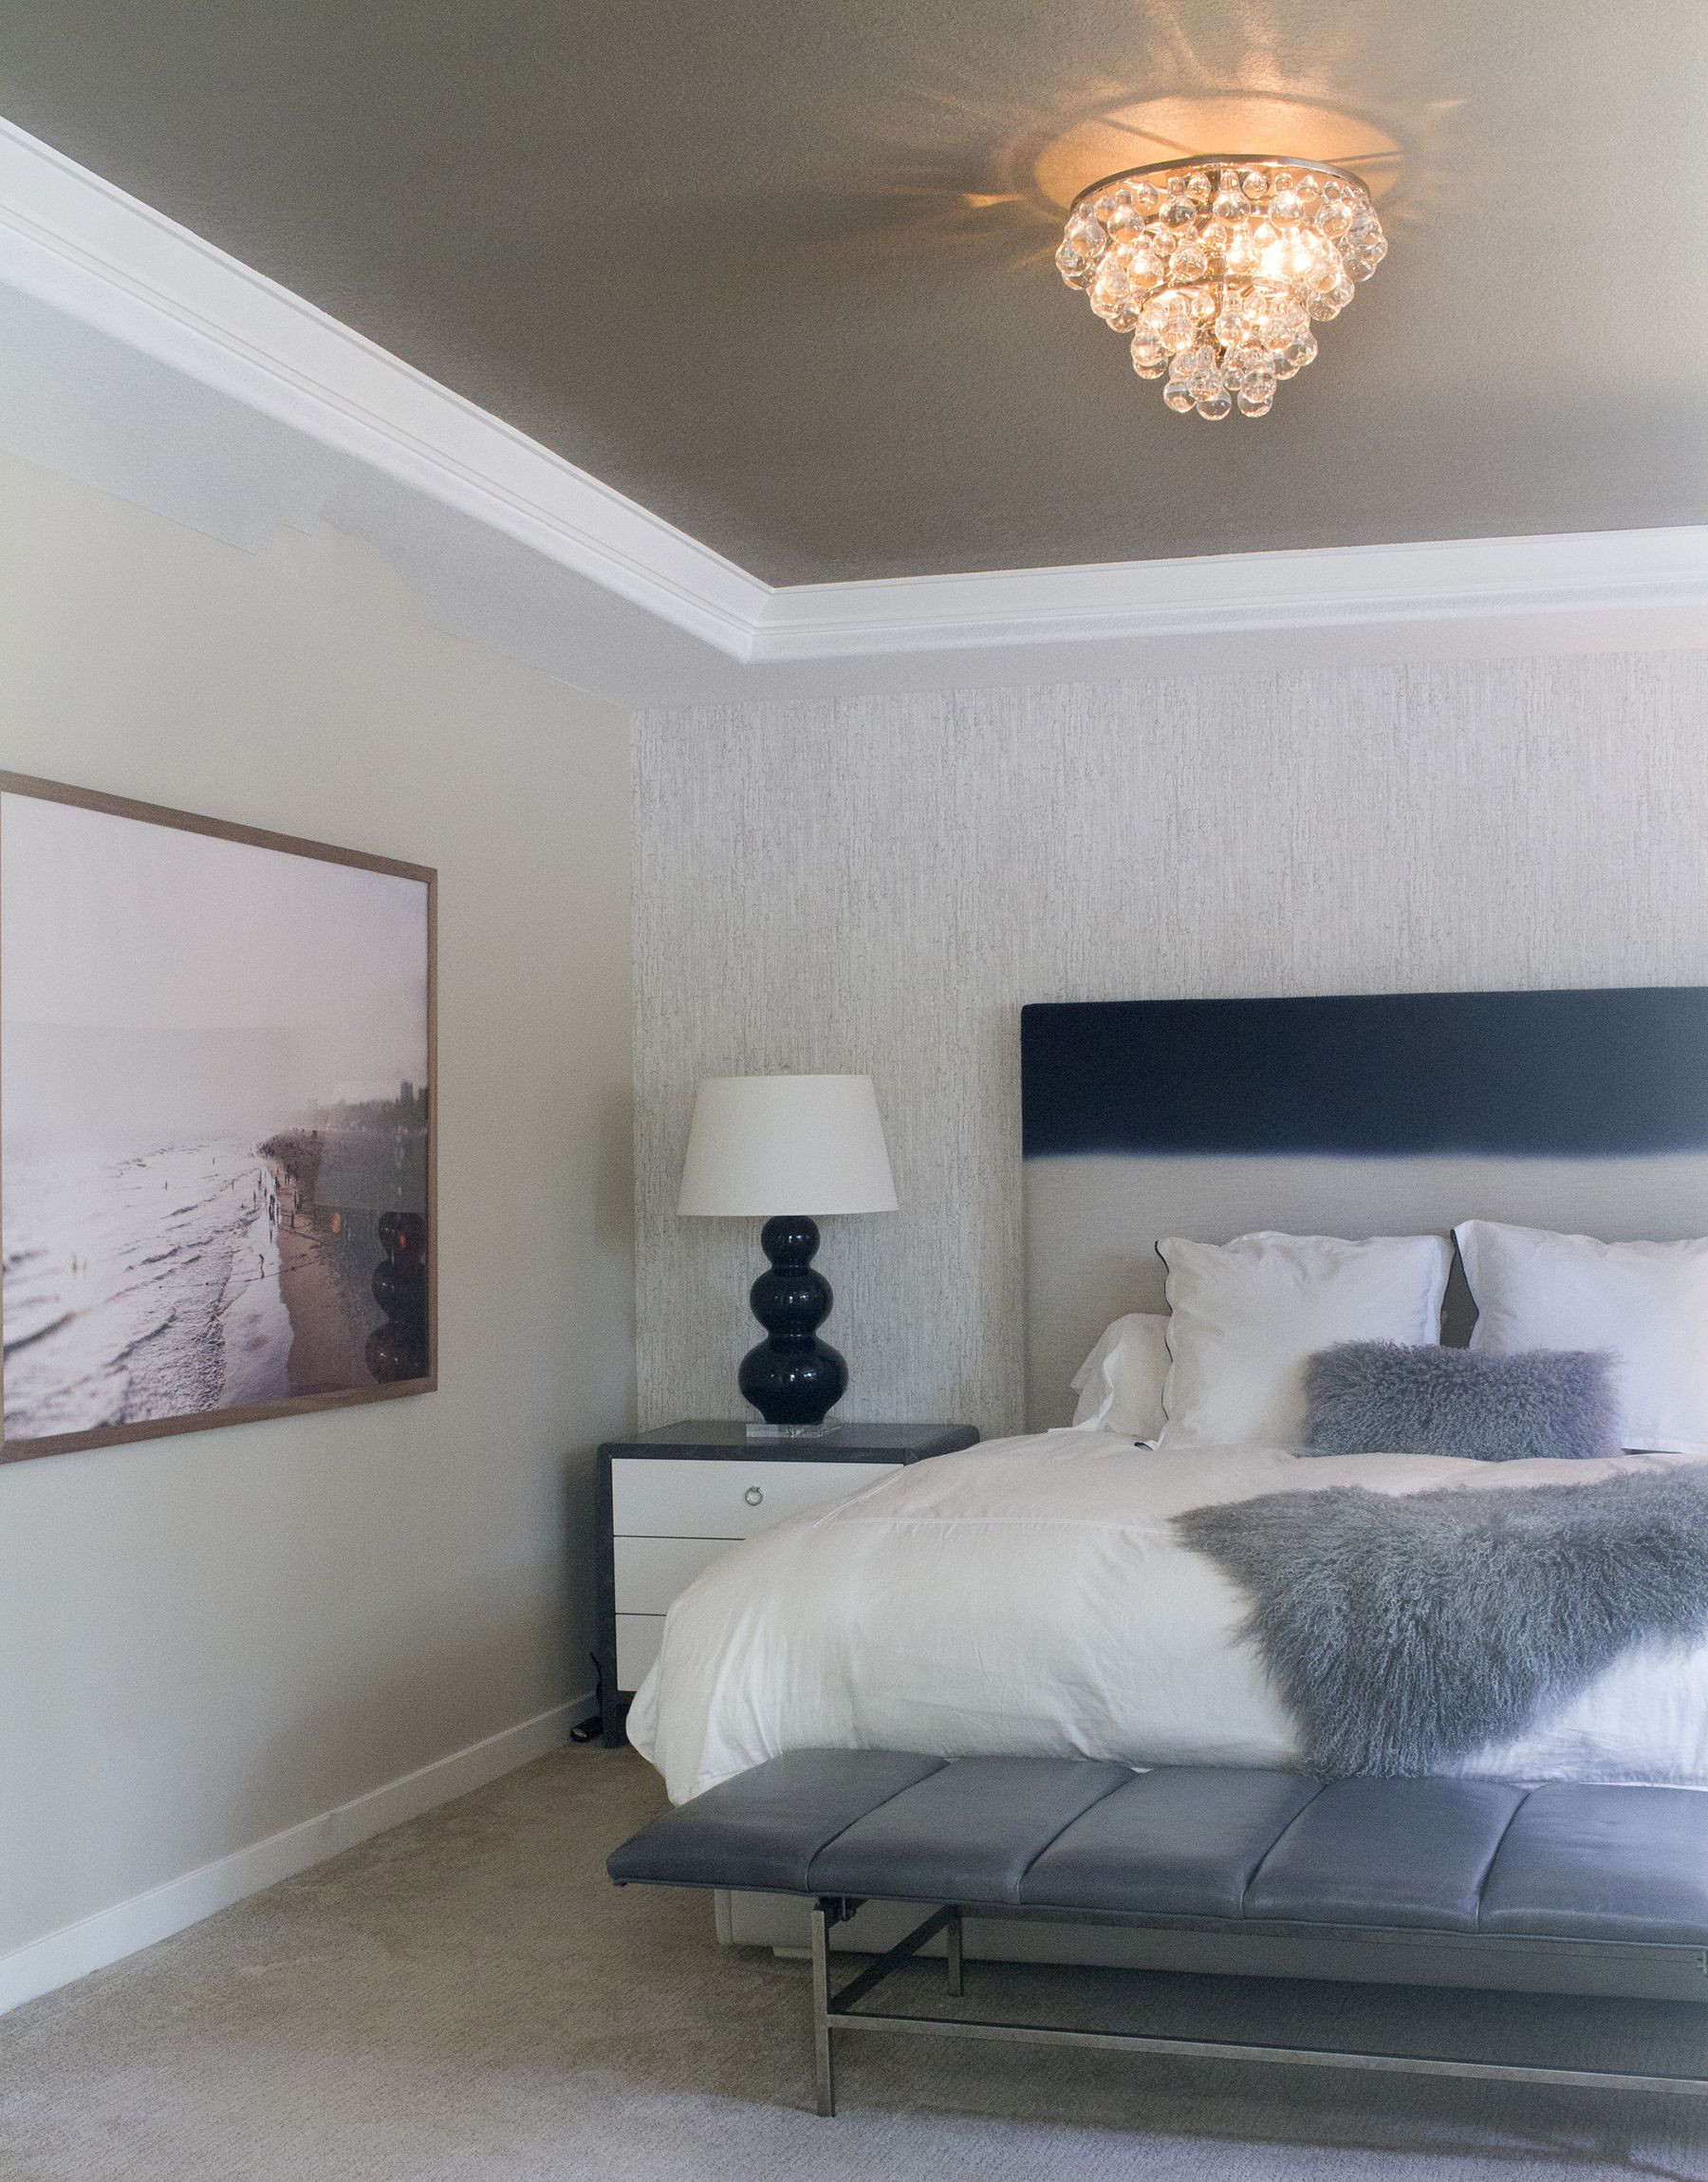 Master bedroom accented by bling chandelier and Jon Rou framed